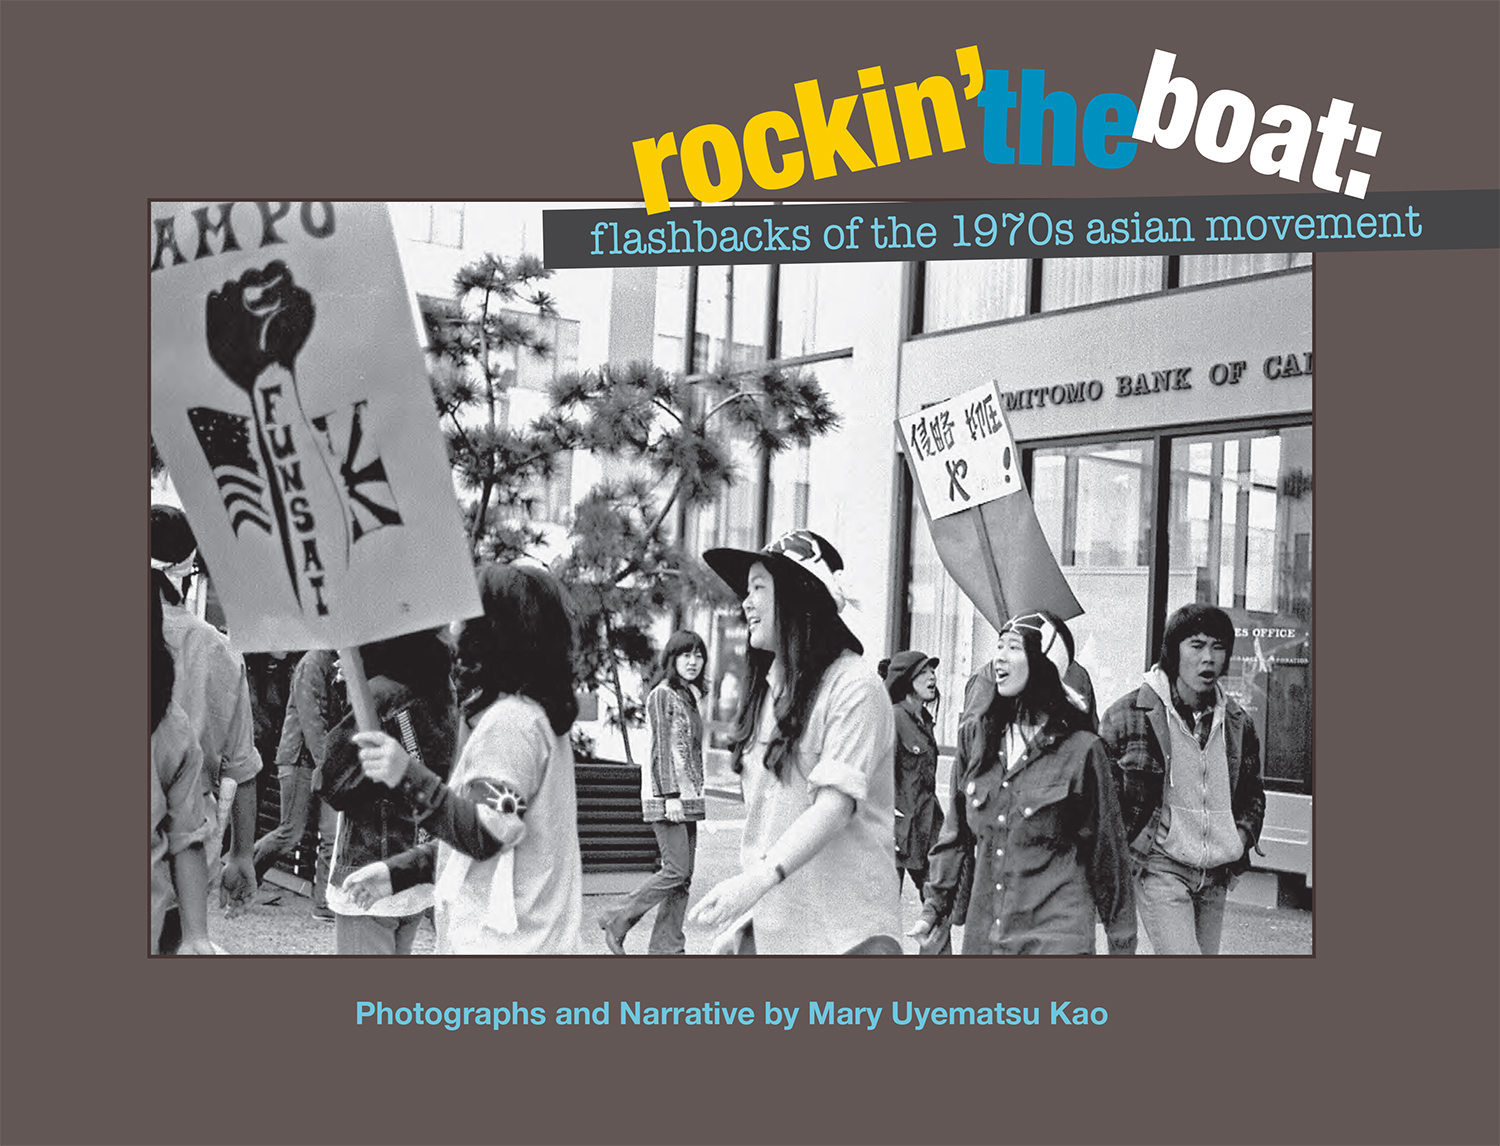 Rockin' the Boat: Flashbacks of the 1970s Asian Movement